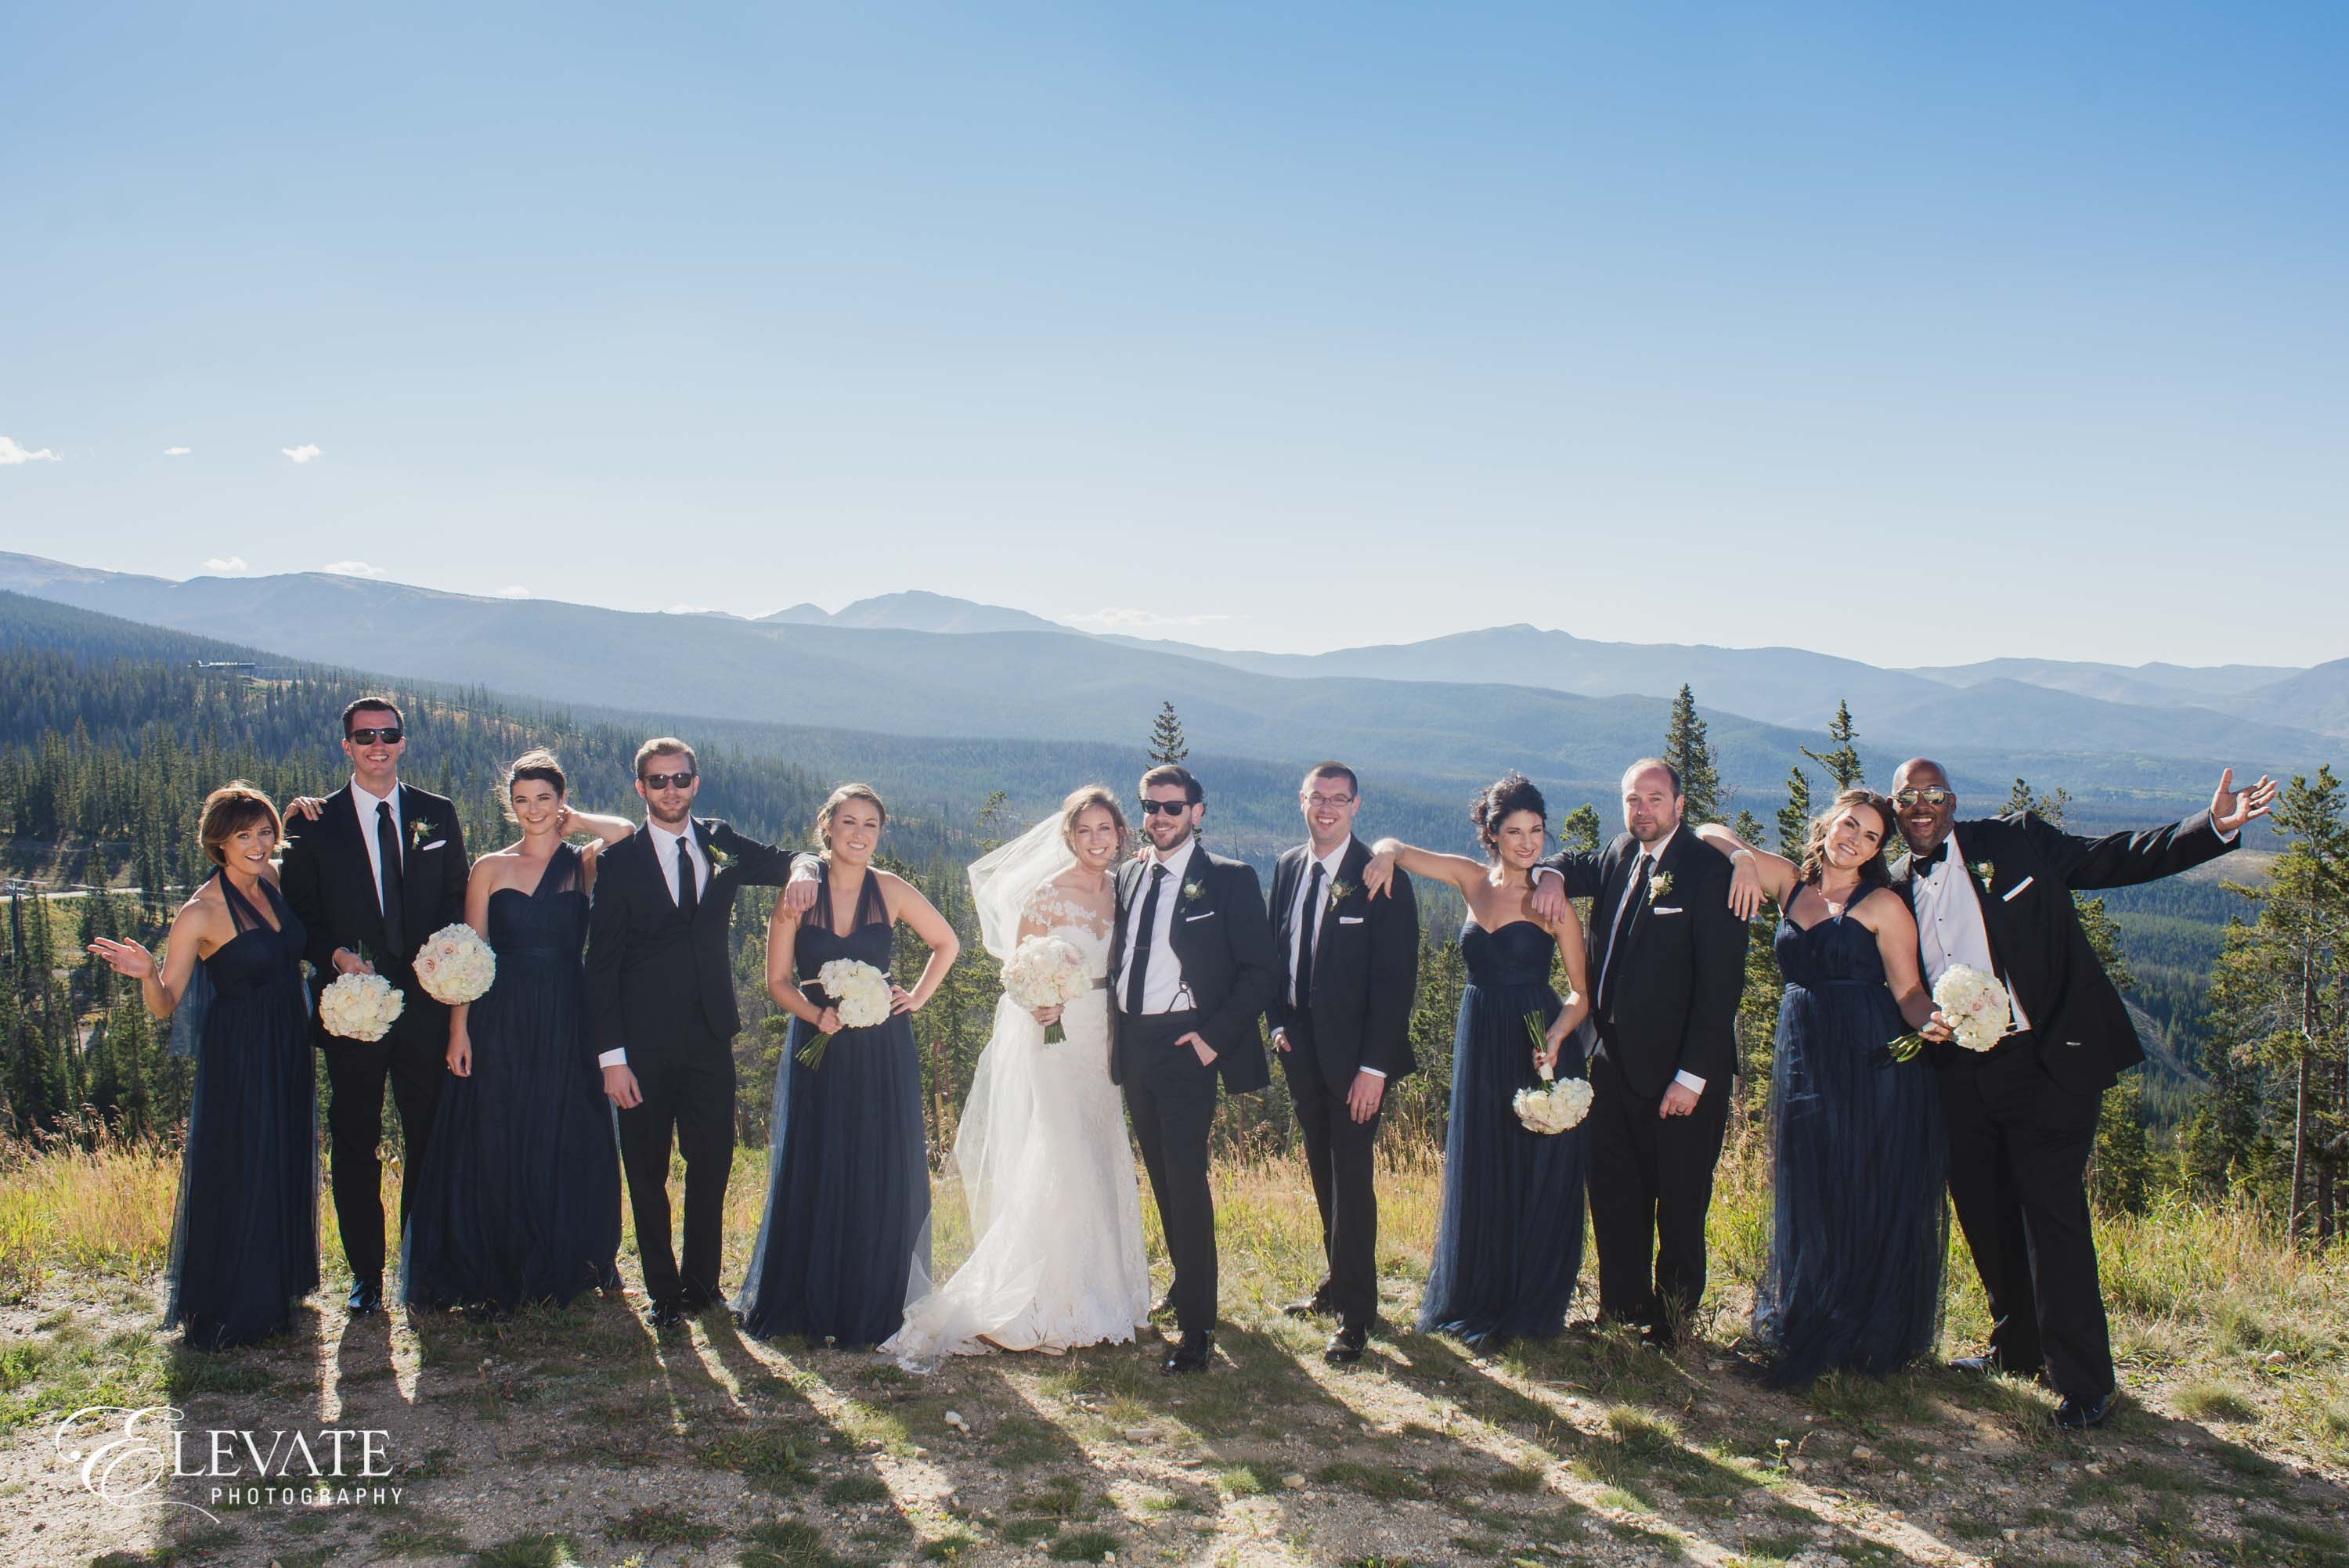 Wedding party on mountain